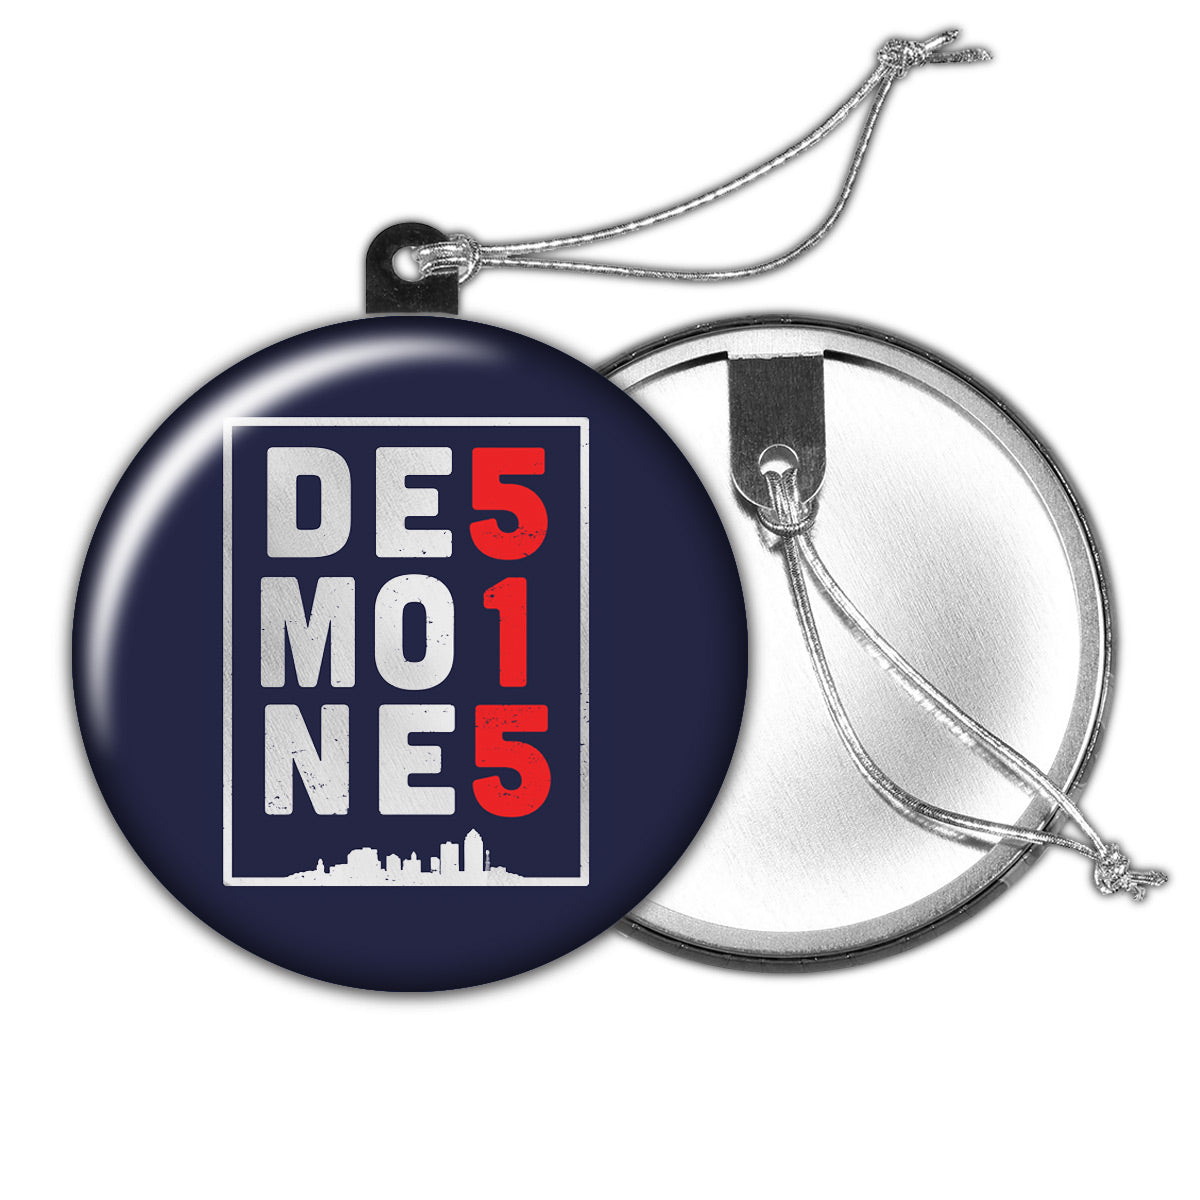 Des Moines 515 Holiday Ornament